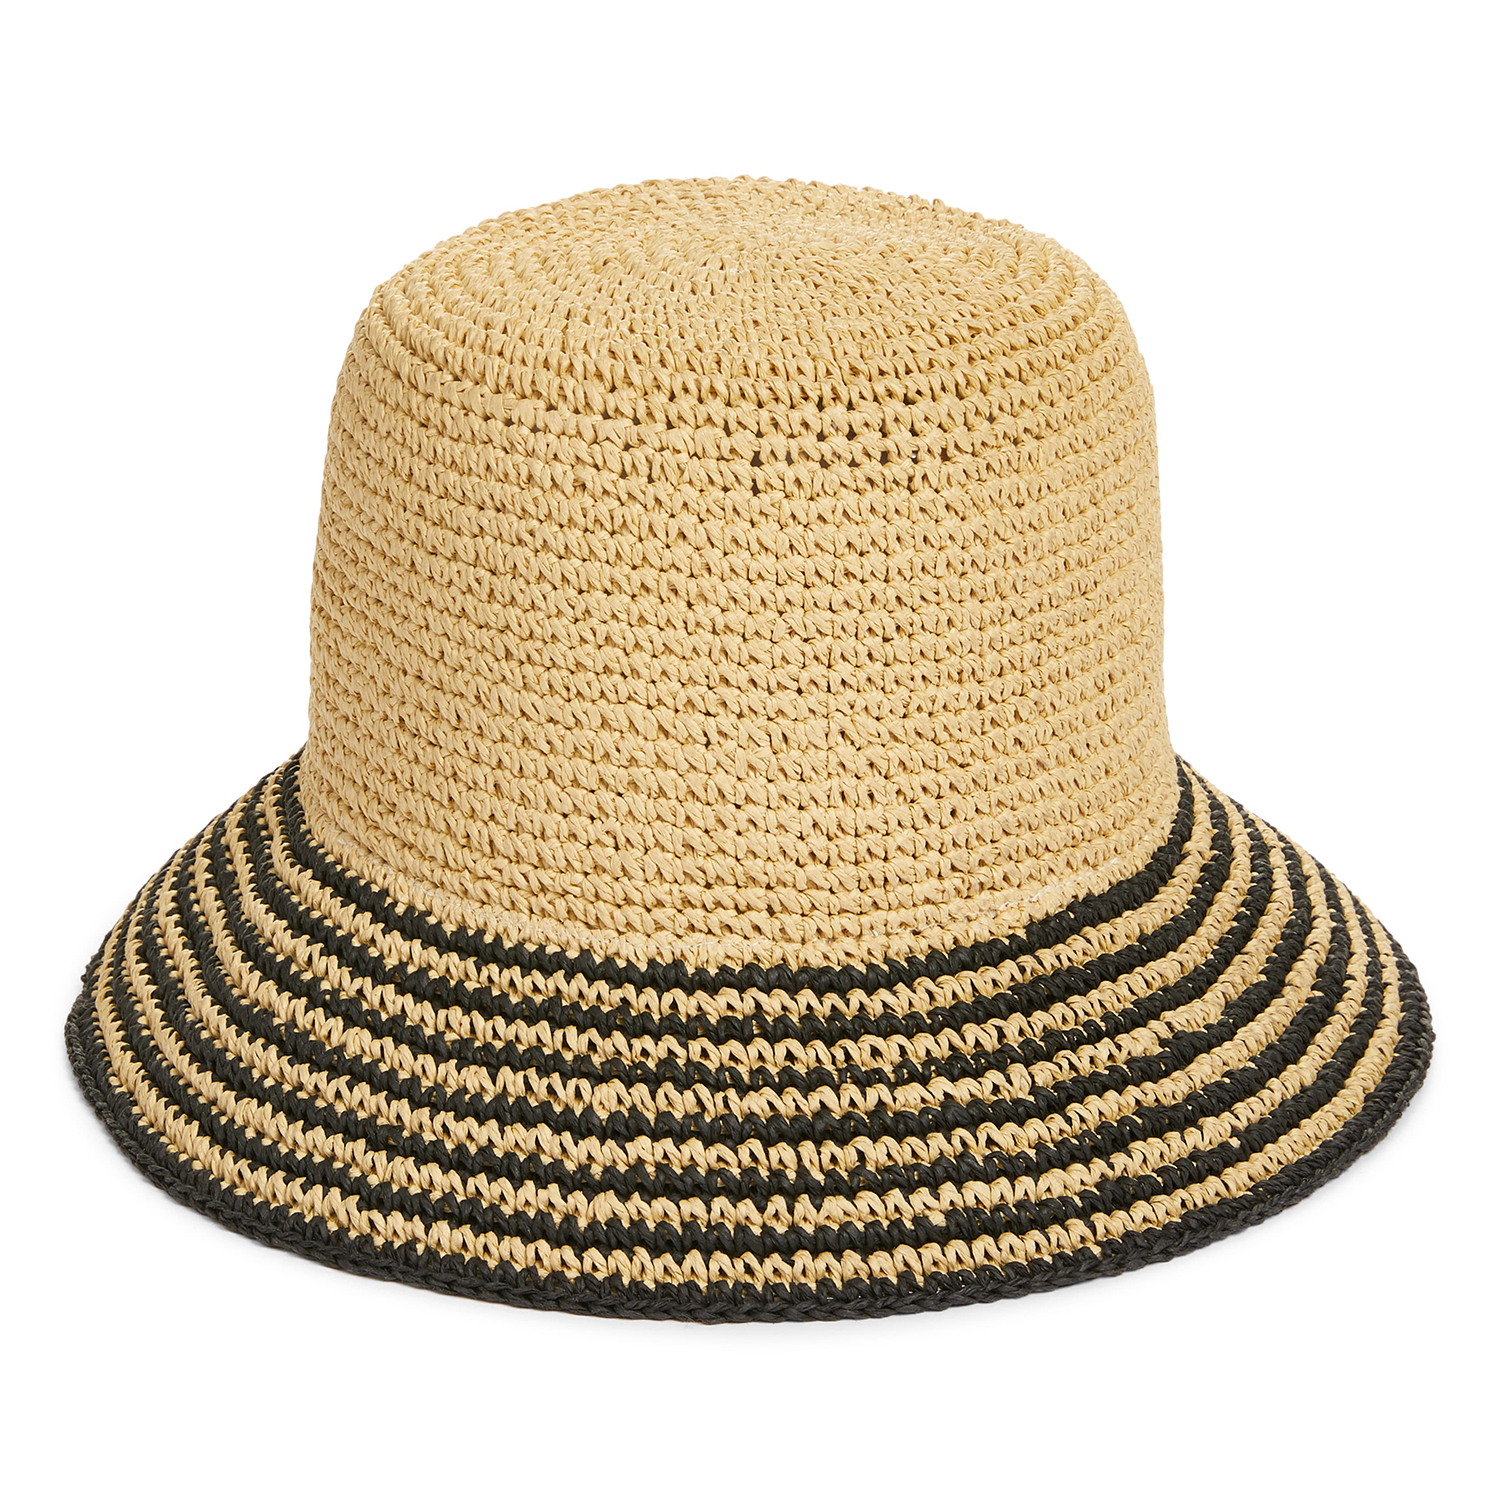 Nordstrom Stripe Brim Straw Bucket Hat